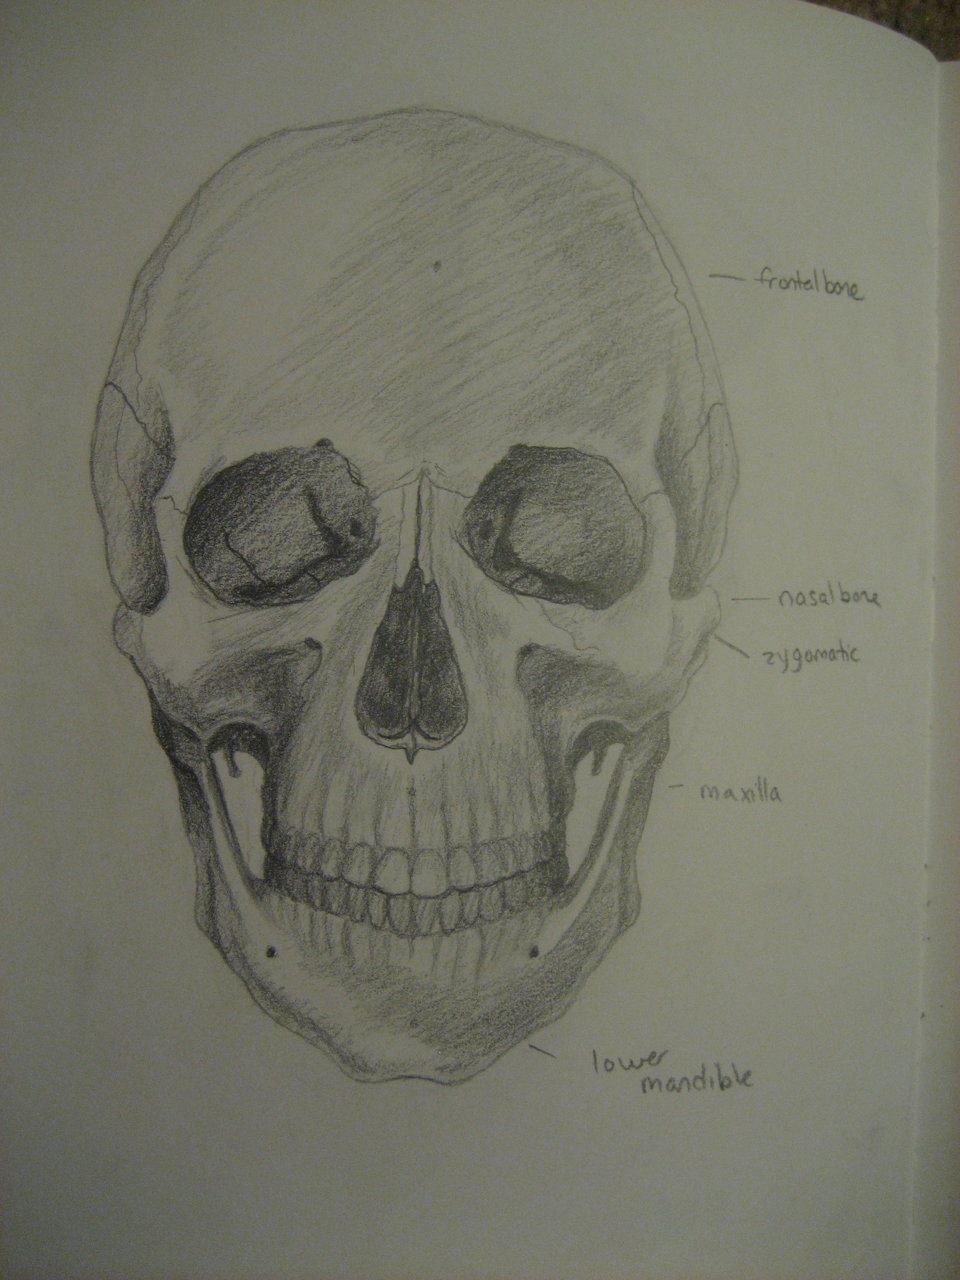 Anatomical Diagram of a Skull